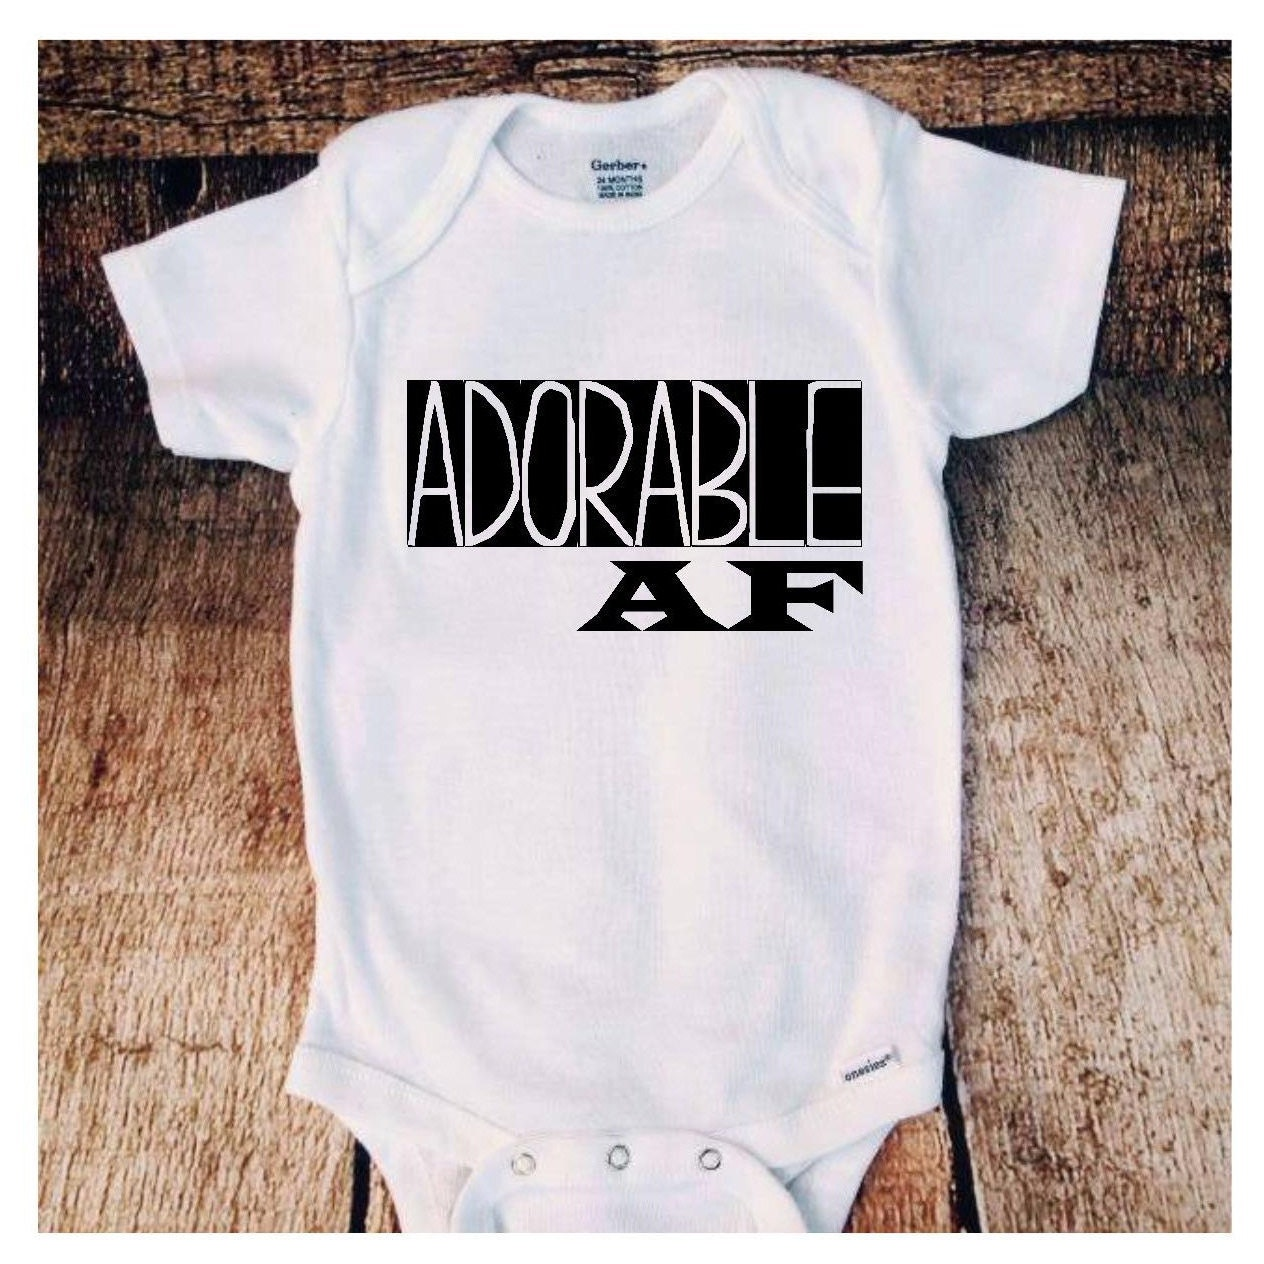 Adorable Af Baby Onesie, Baby Clothes, Baby Shower Gifts, Newborn Gifts For  Mom